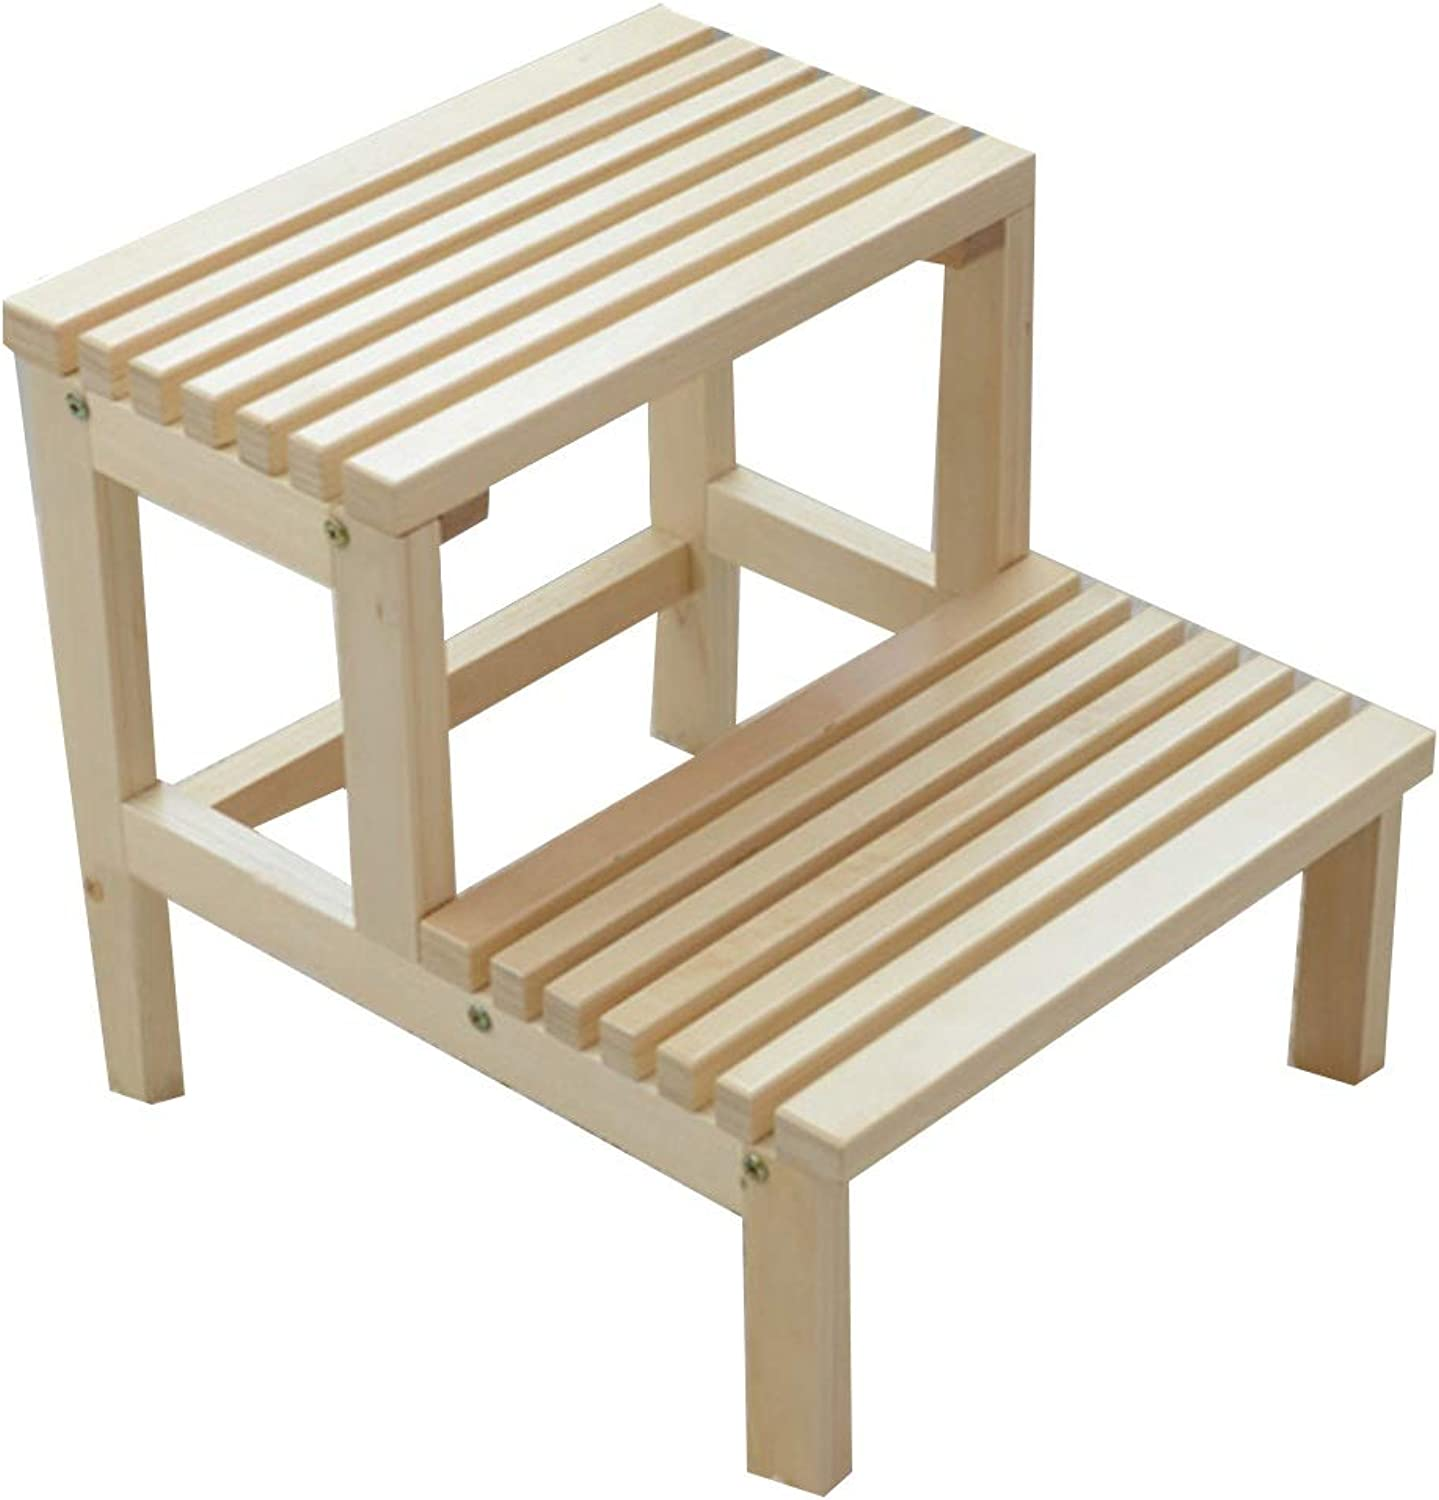 Qing MEI Solid Wood Step Stool Double Stool Stair Stool Step Stool Practical Stool 2 Steps Wood color 40X44X41cm